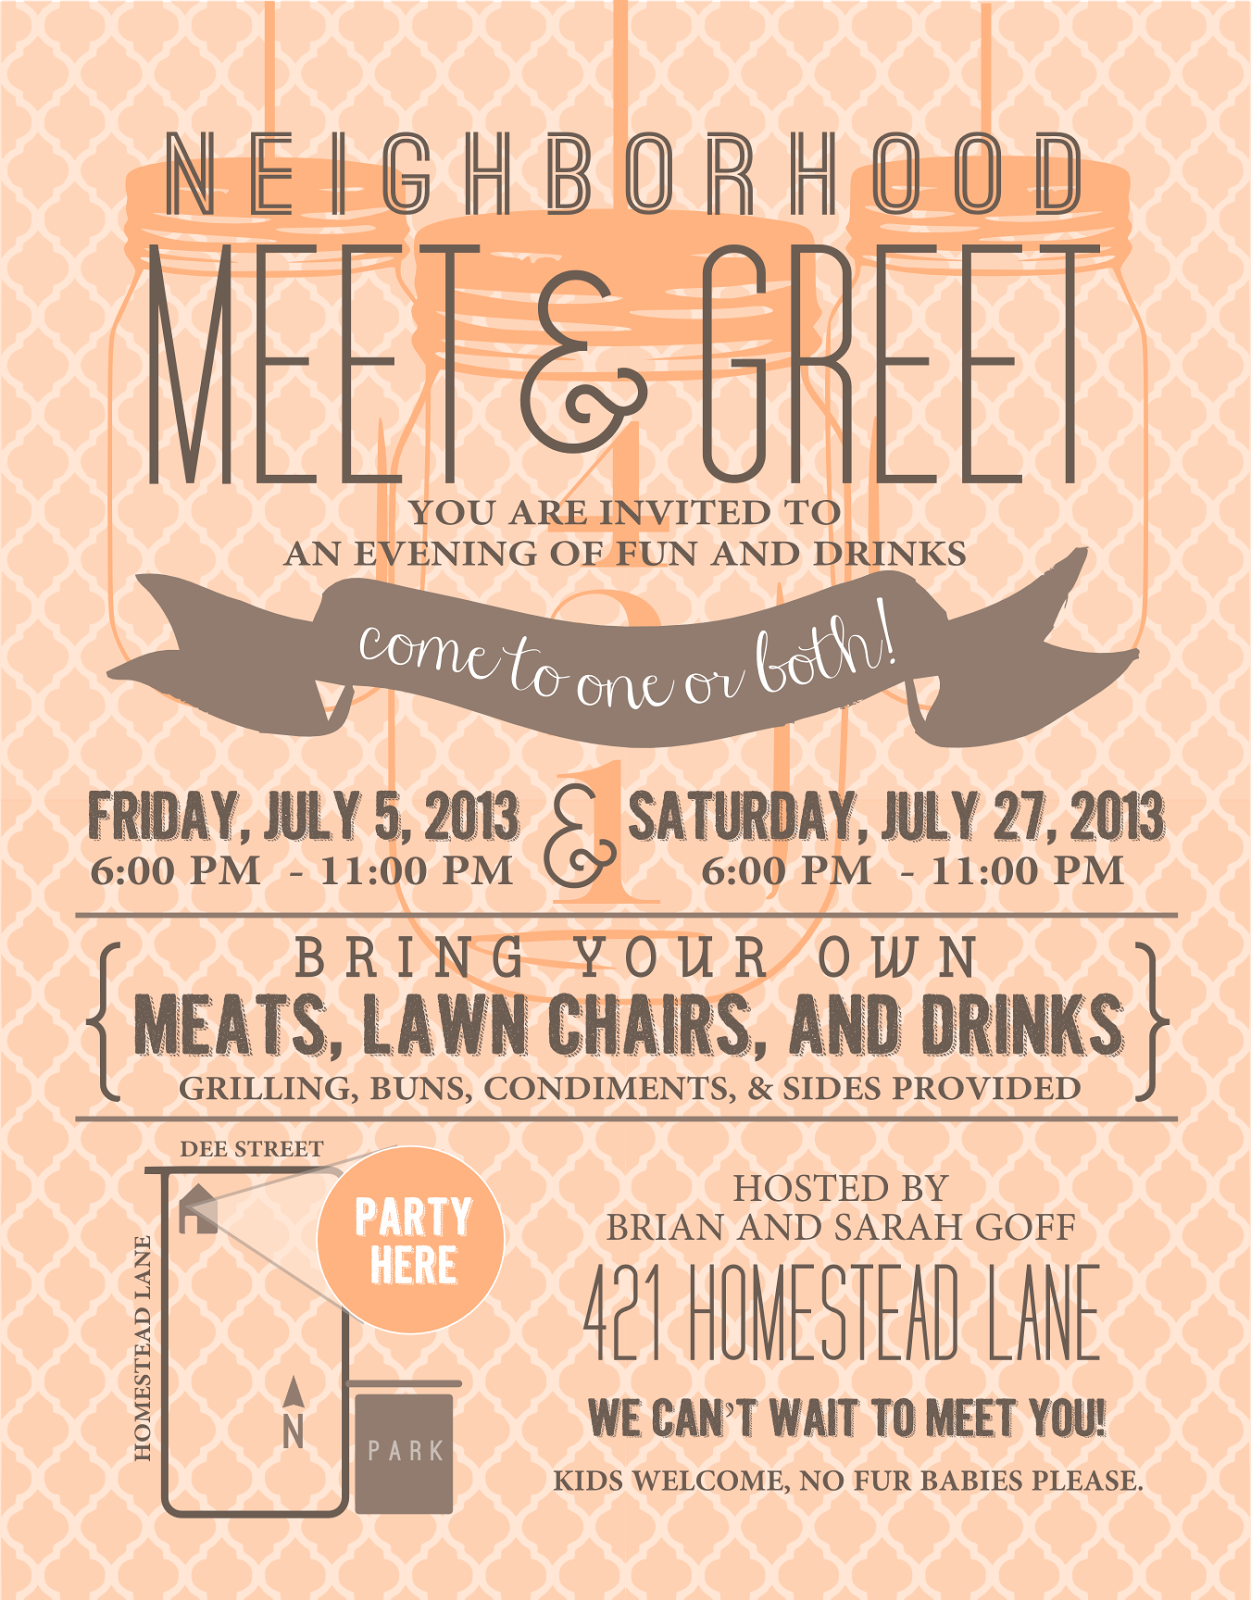 meet and greet invitation examples